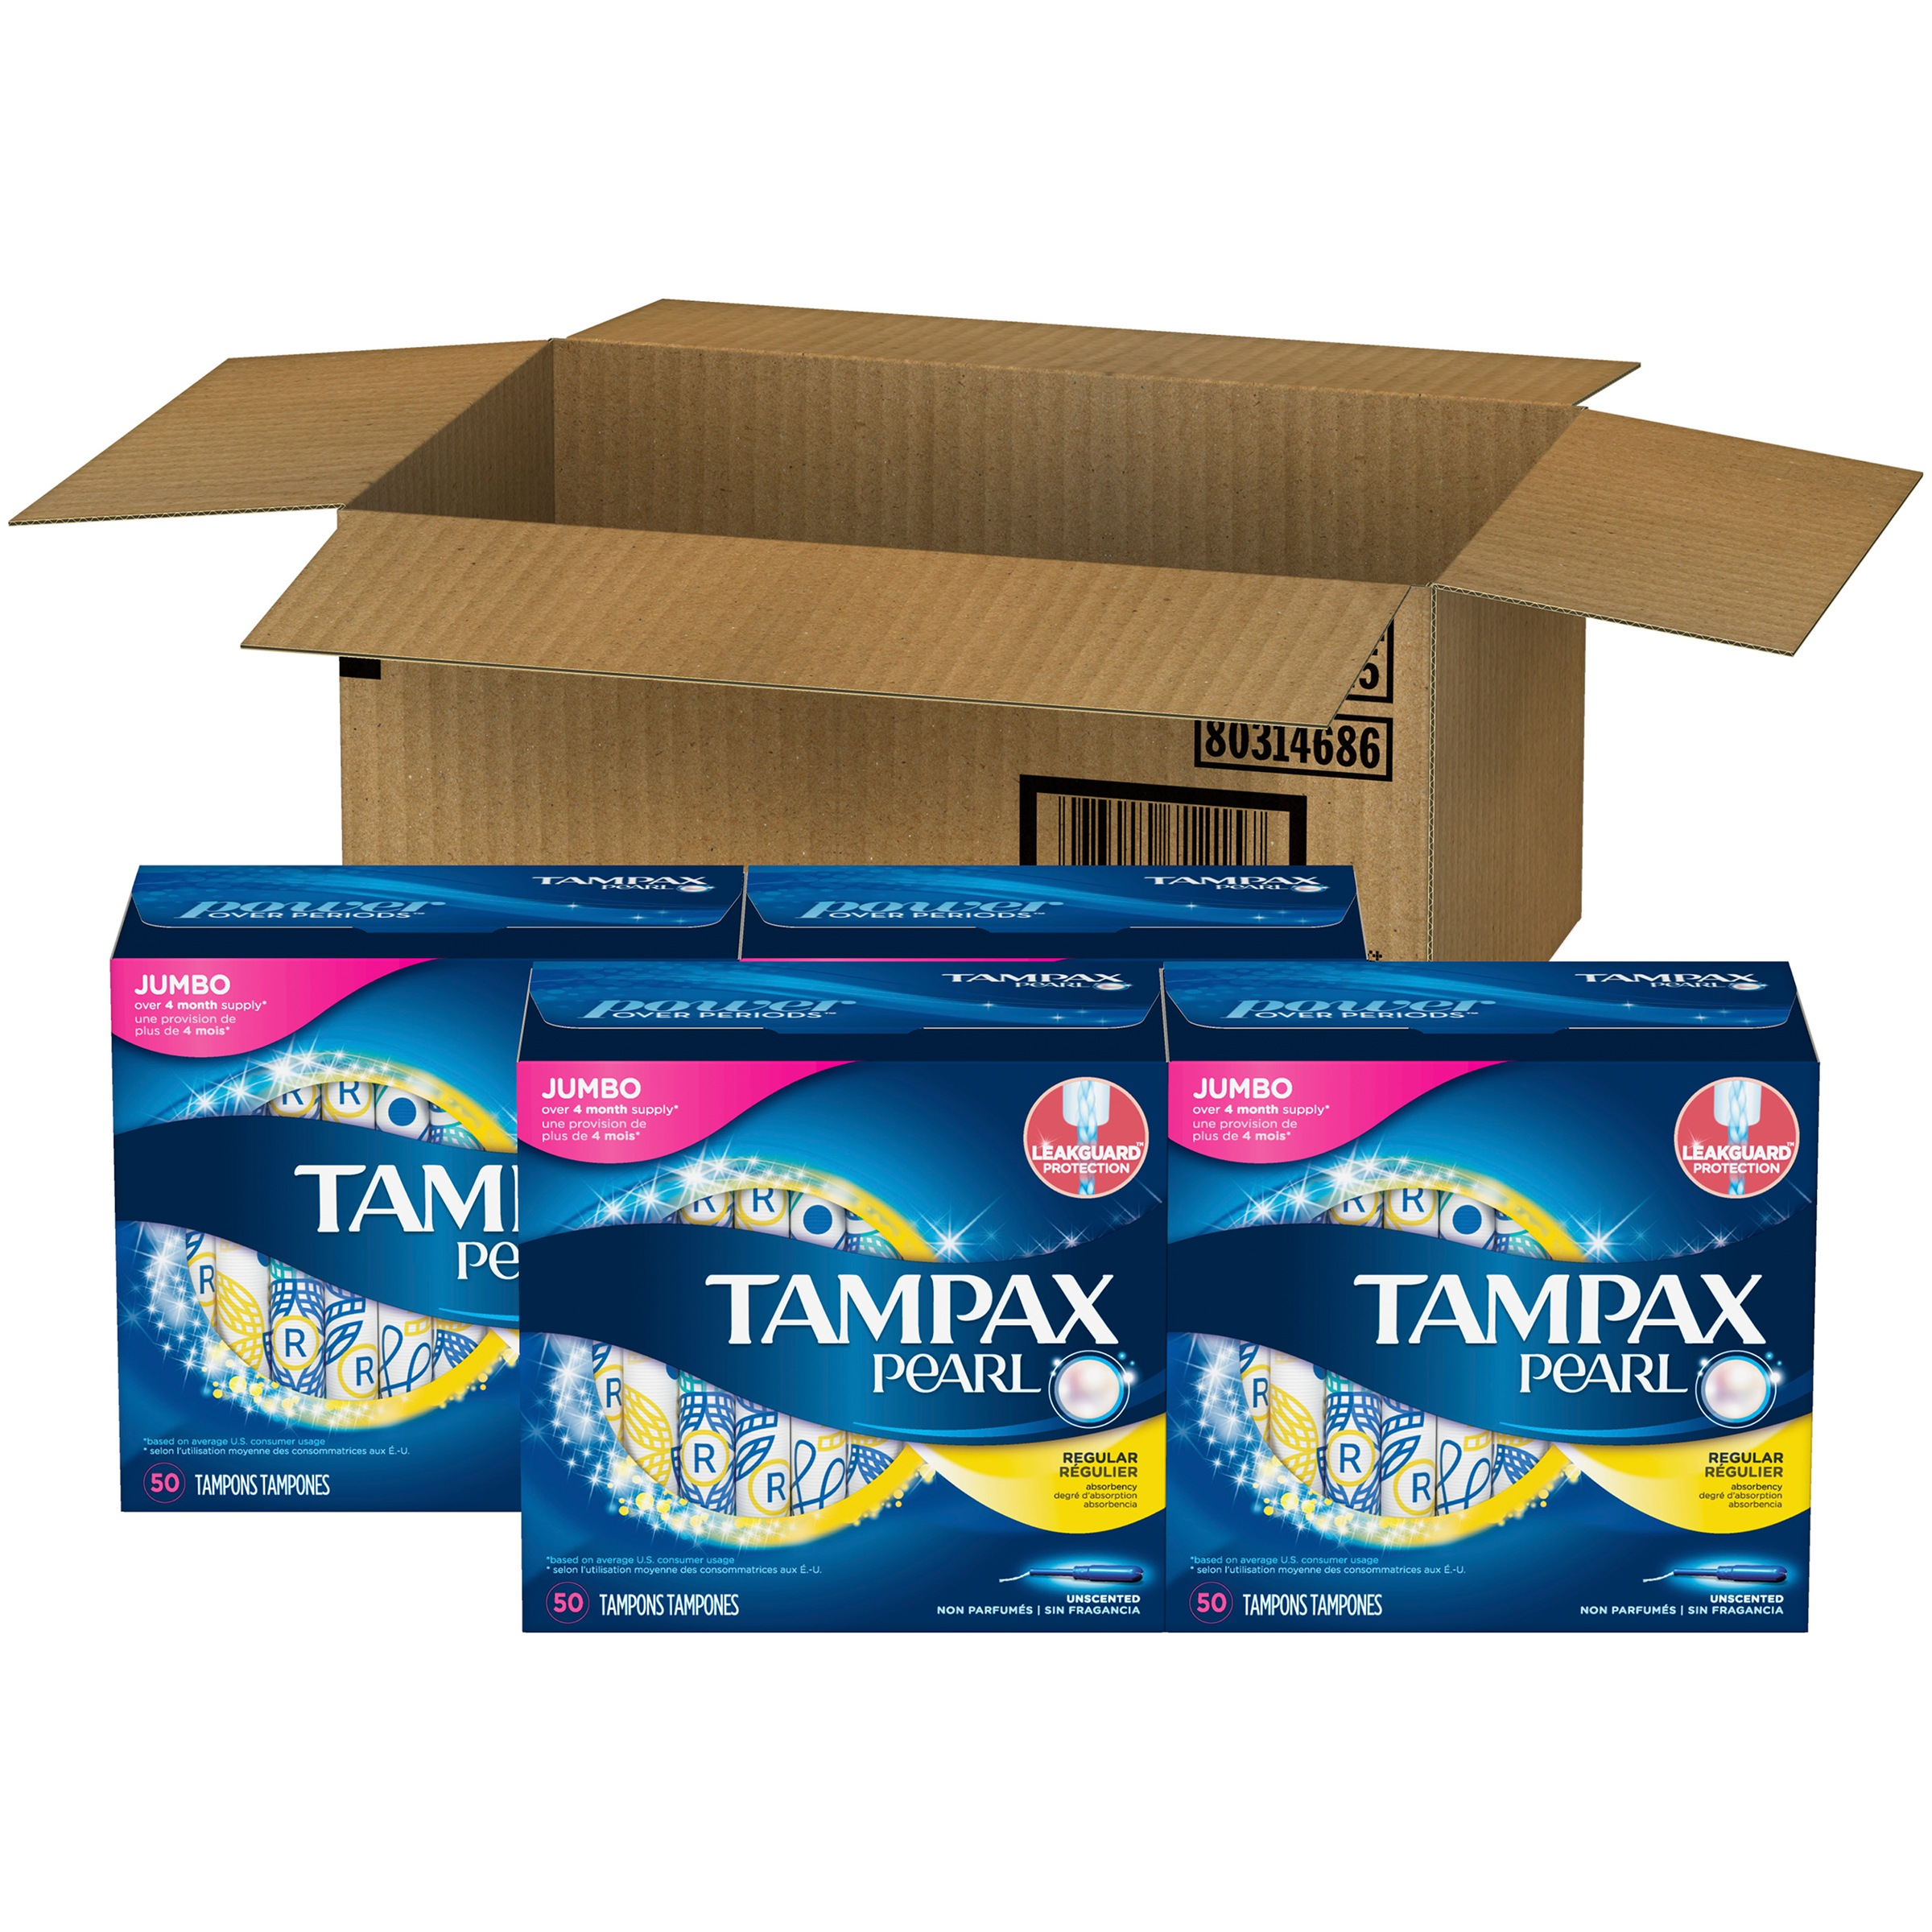 Tampax Pearl Regular Plastic Tampons, Unscented, 200 Count